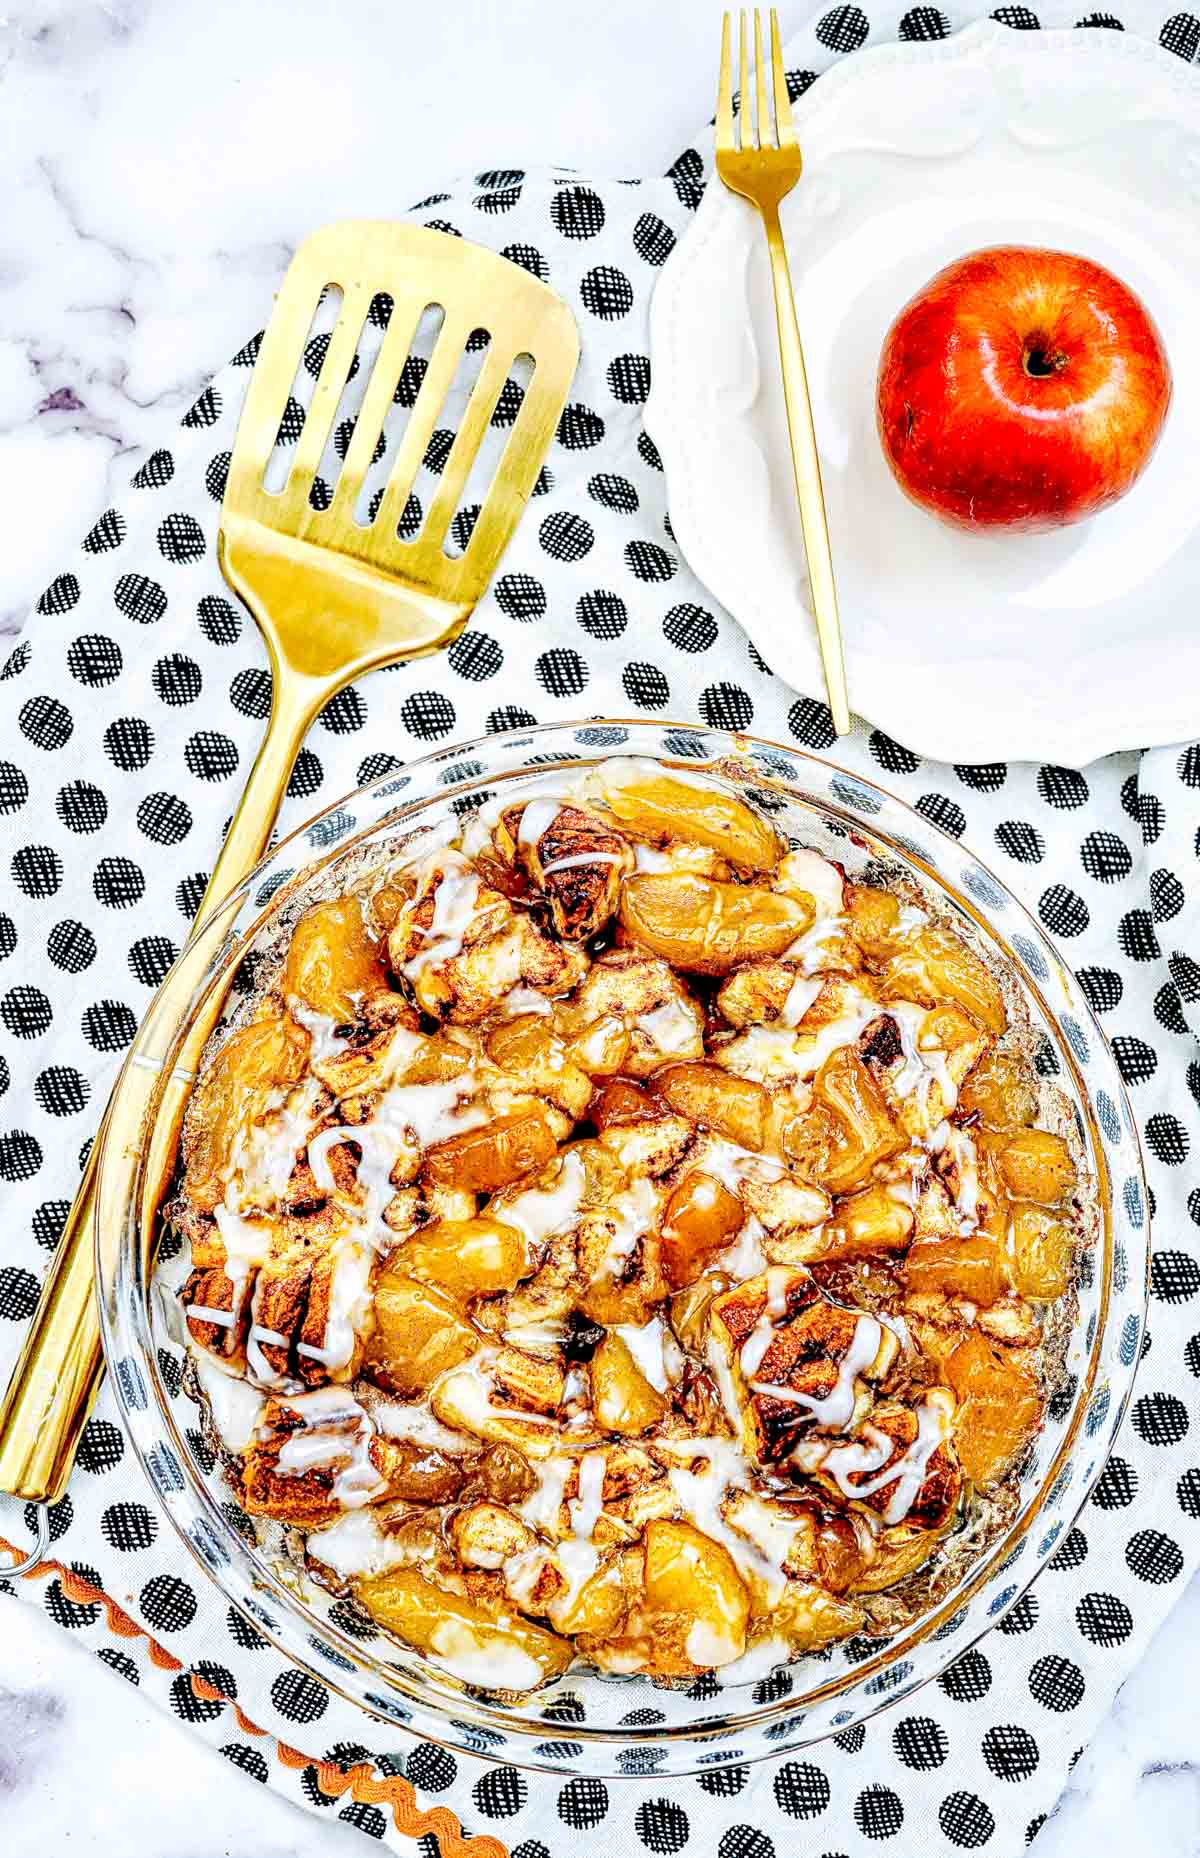 apple with baked cinnamon cobbler